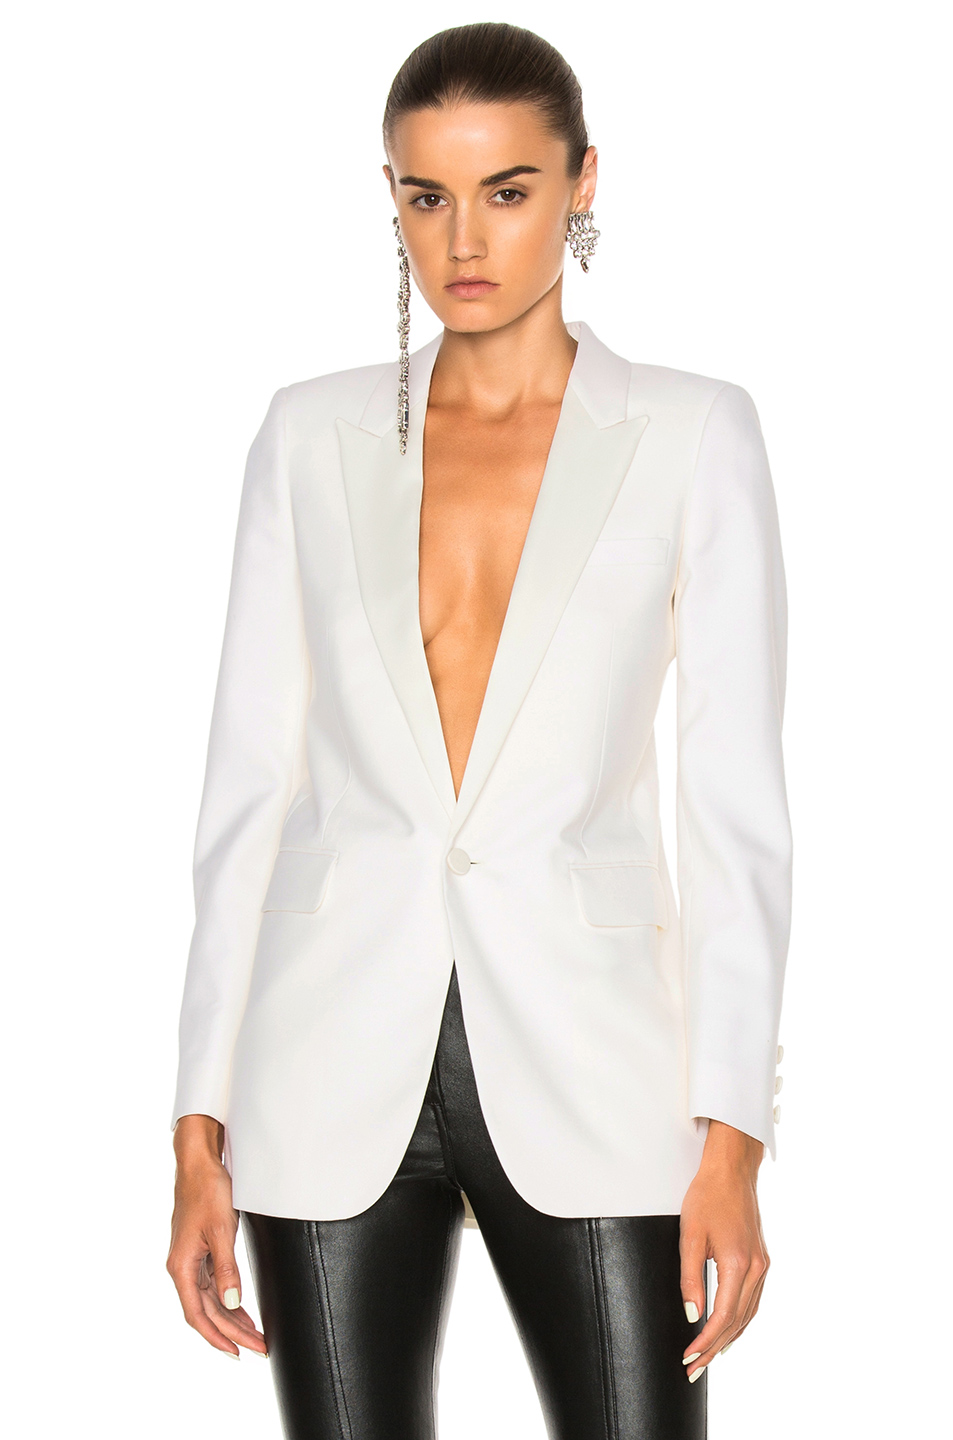 Saint Laurent Mohair Smoking Jacket in White